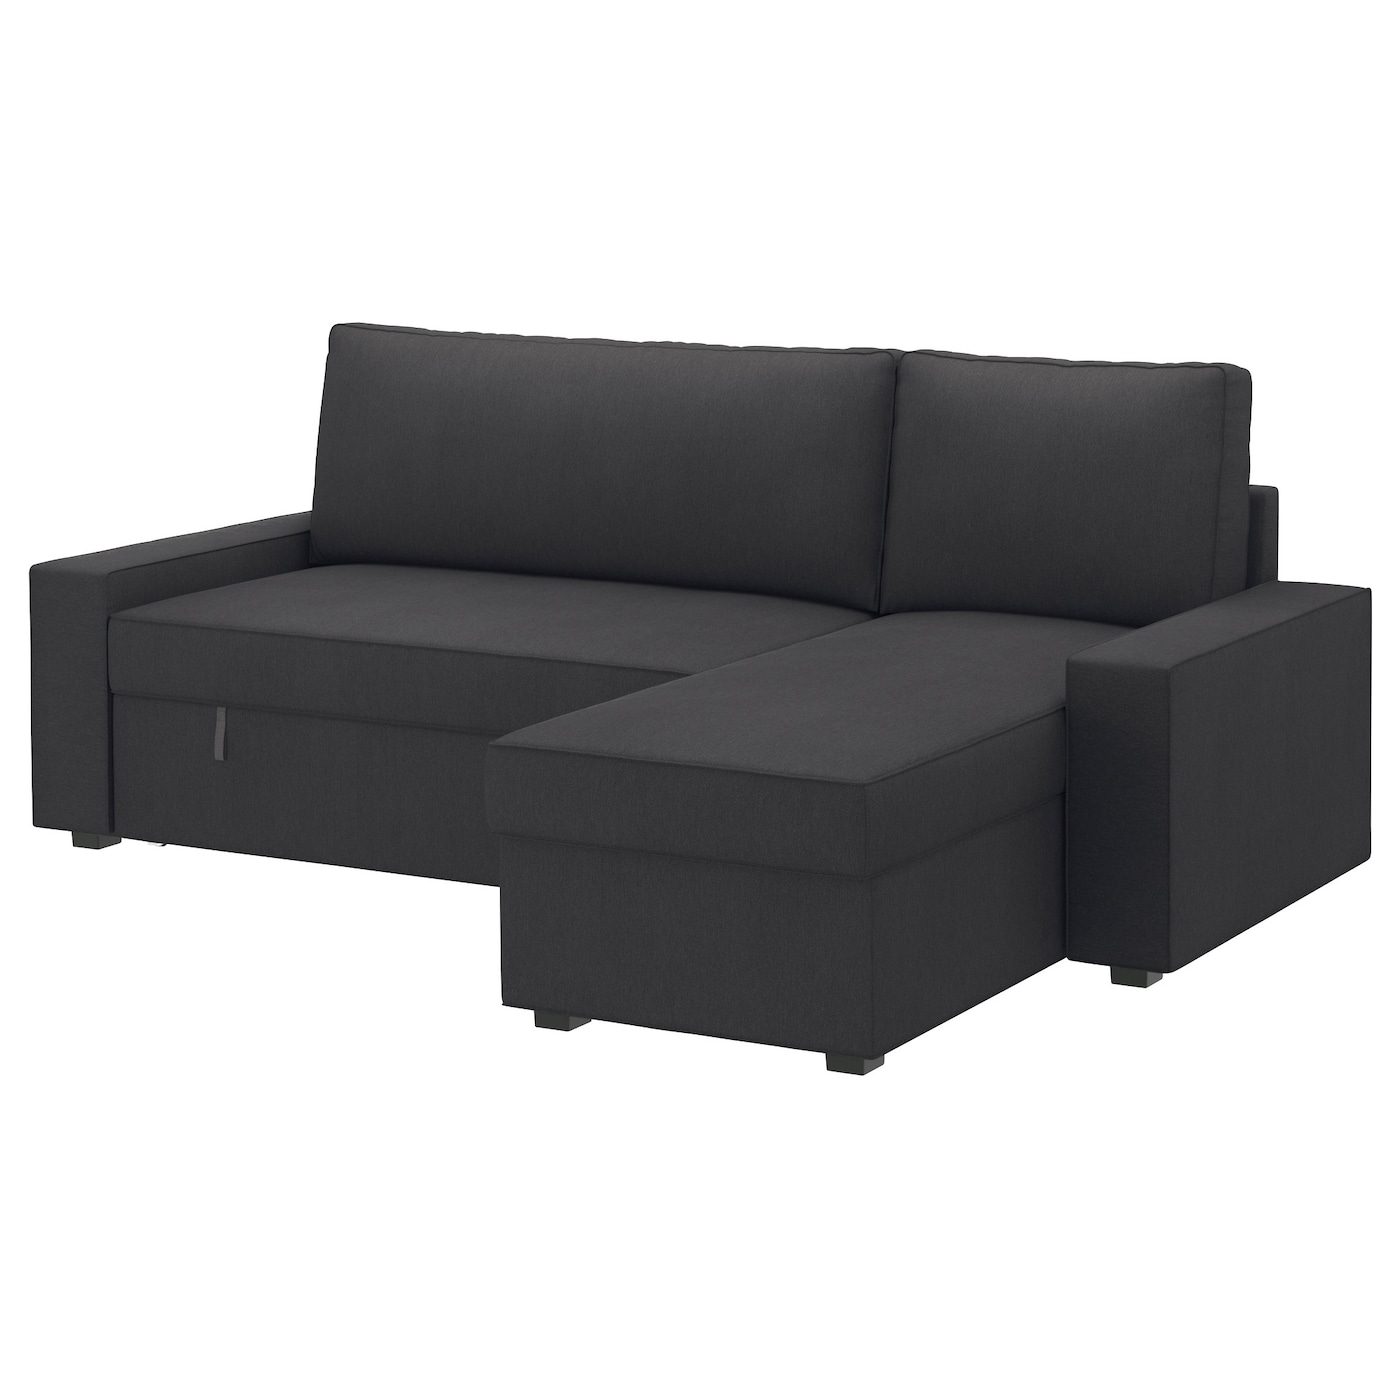 Vilasund sofa bed with chaise longue dansbo dark grey ikea - Chaise longue jardin ikea ...